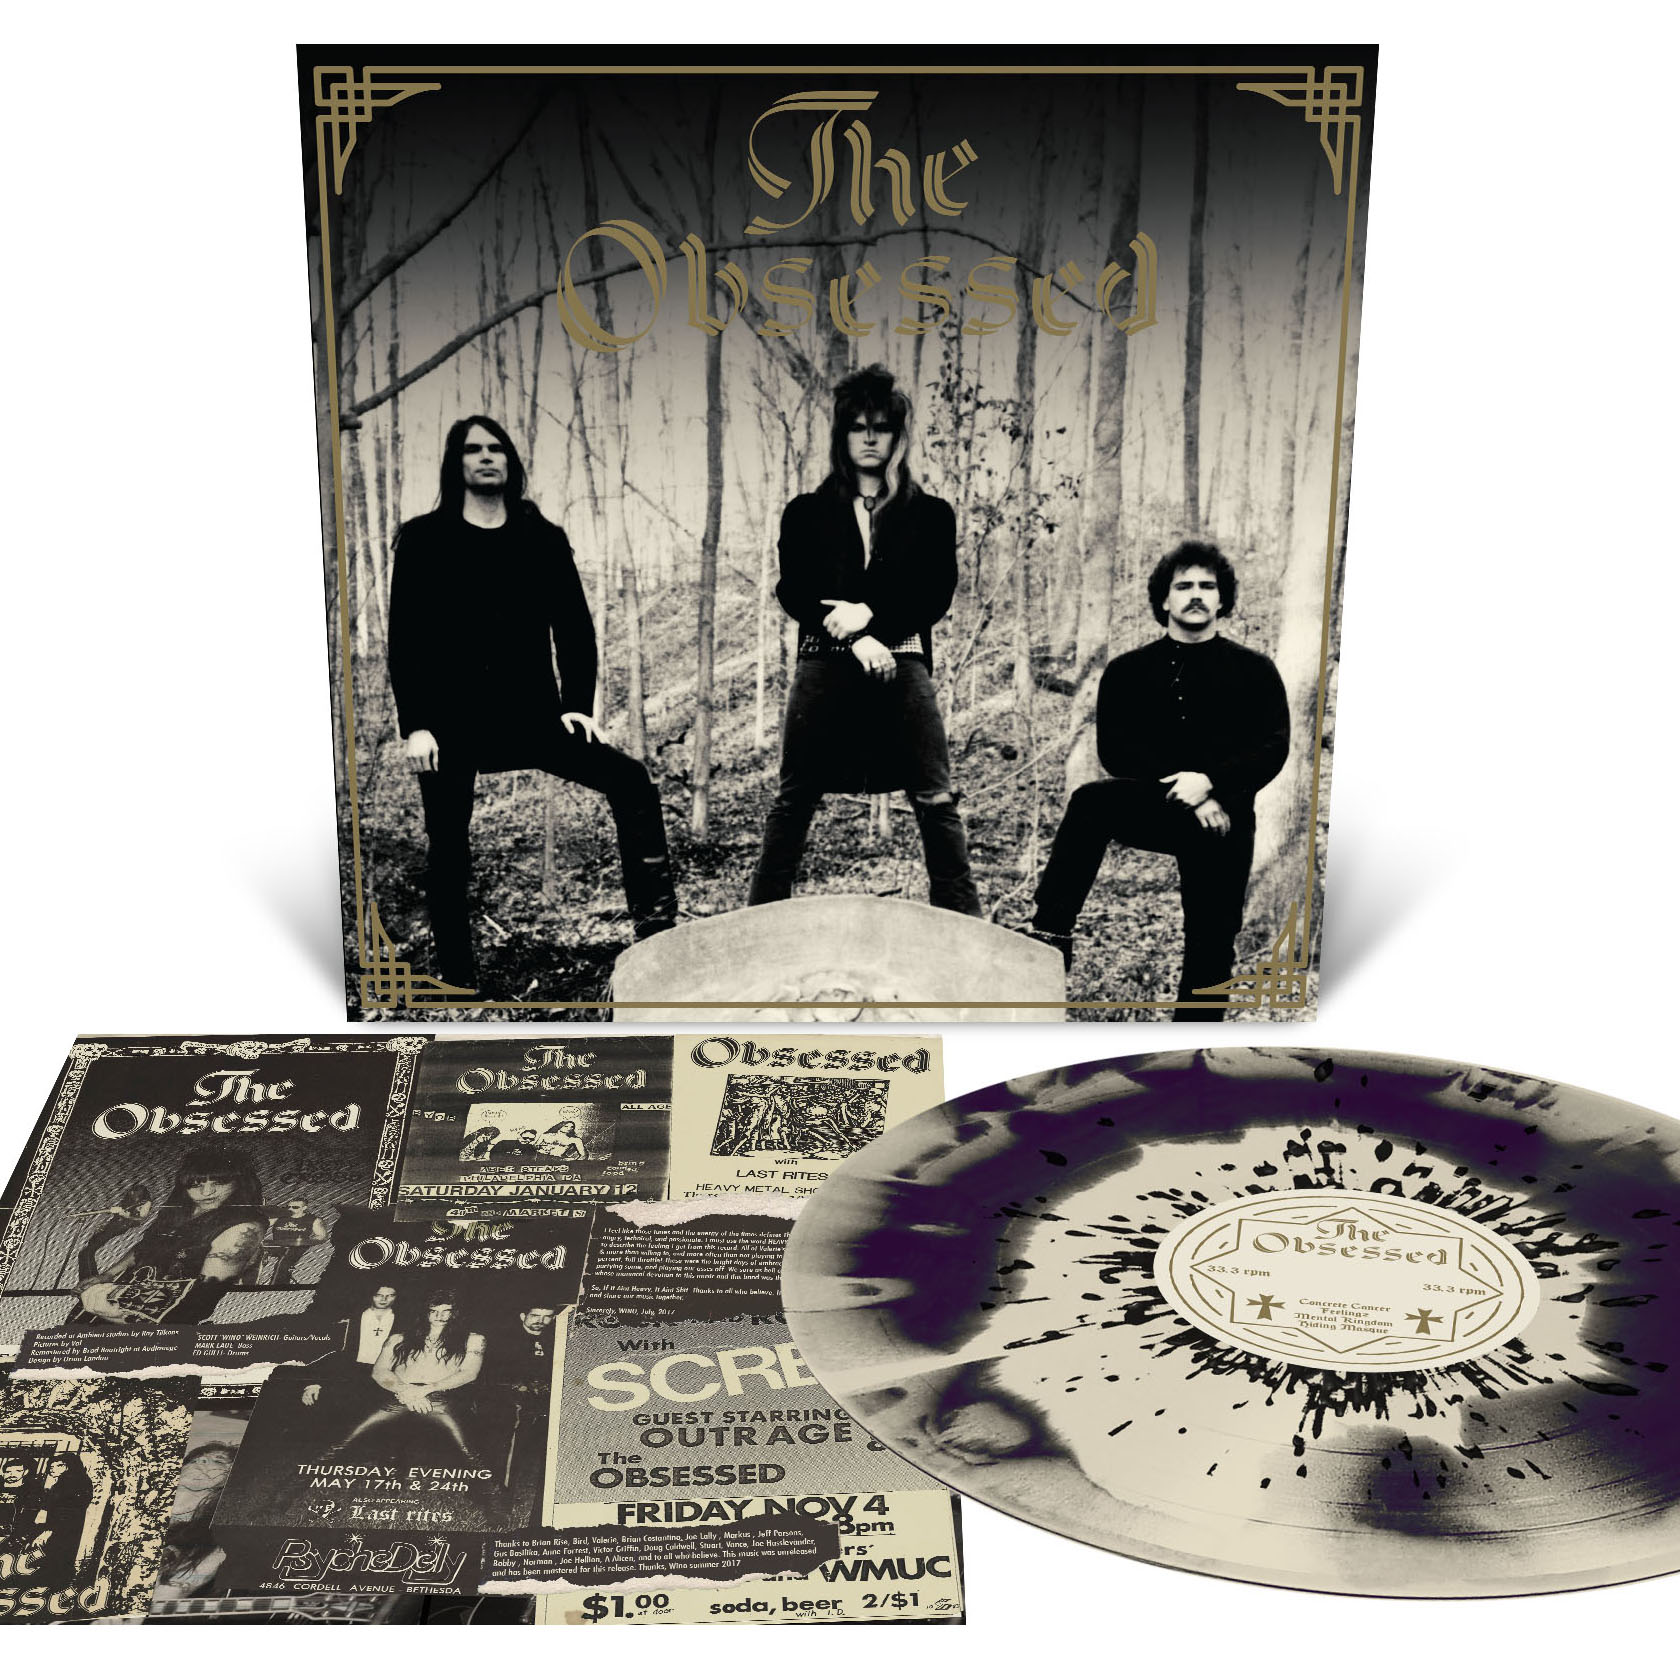 The Obsessed (Reissue) LP + Demo (Reissue) LP Bundle